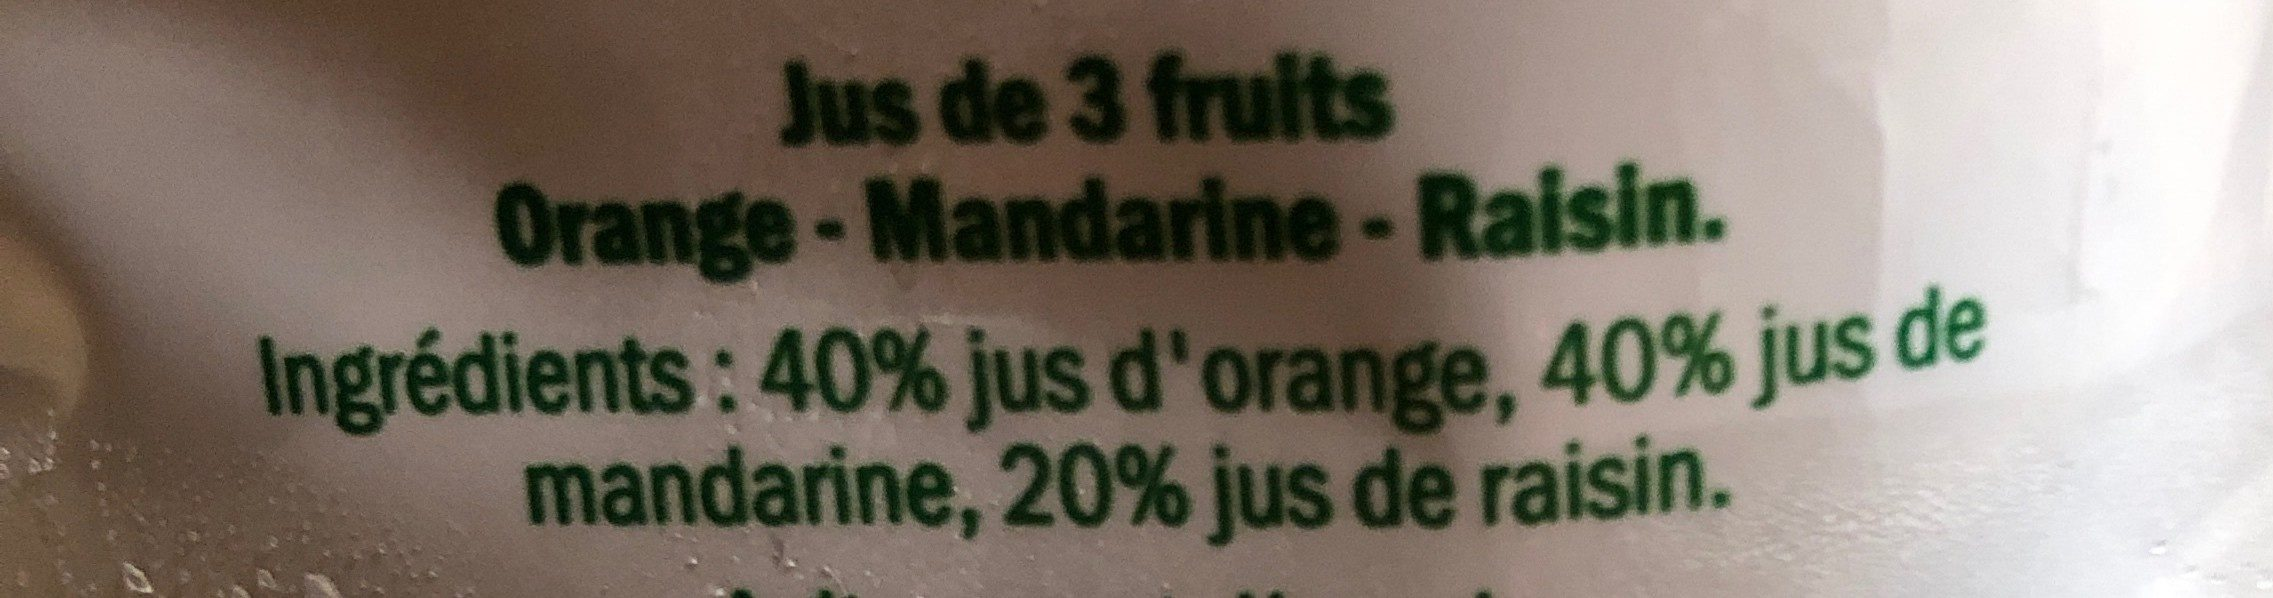 Petit Déjeuner Orange - Mandarine - Raisin - Ingredients